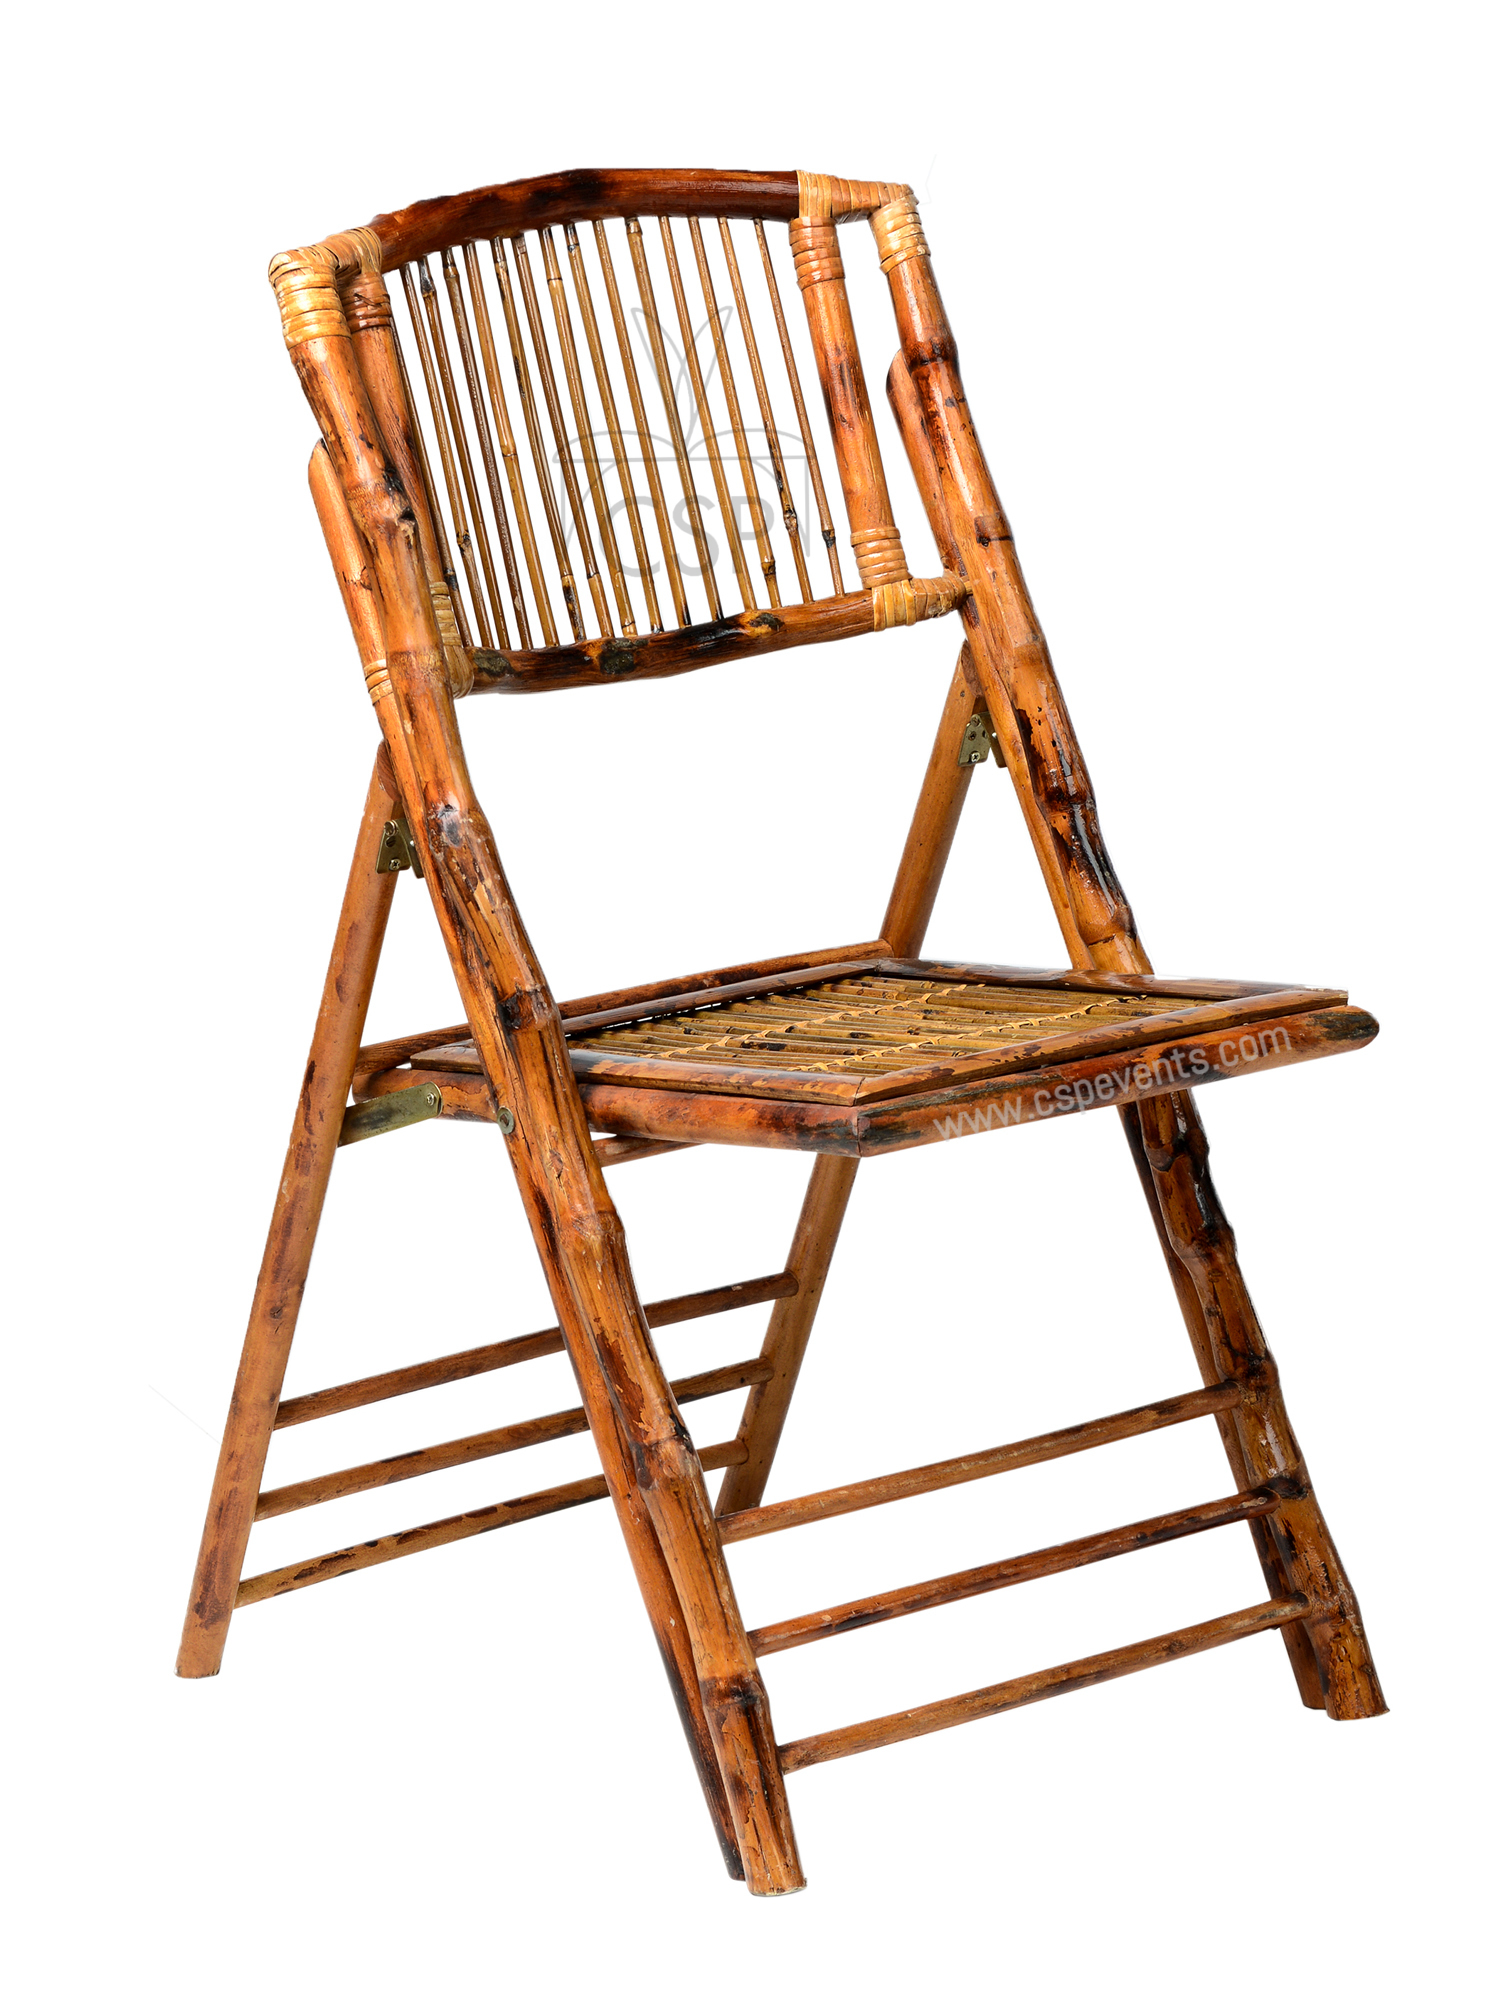 Bamboo Folding Chair Csp